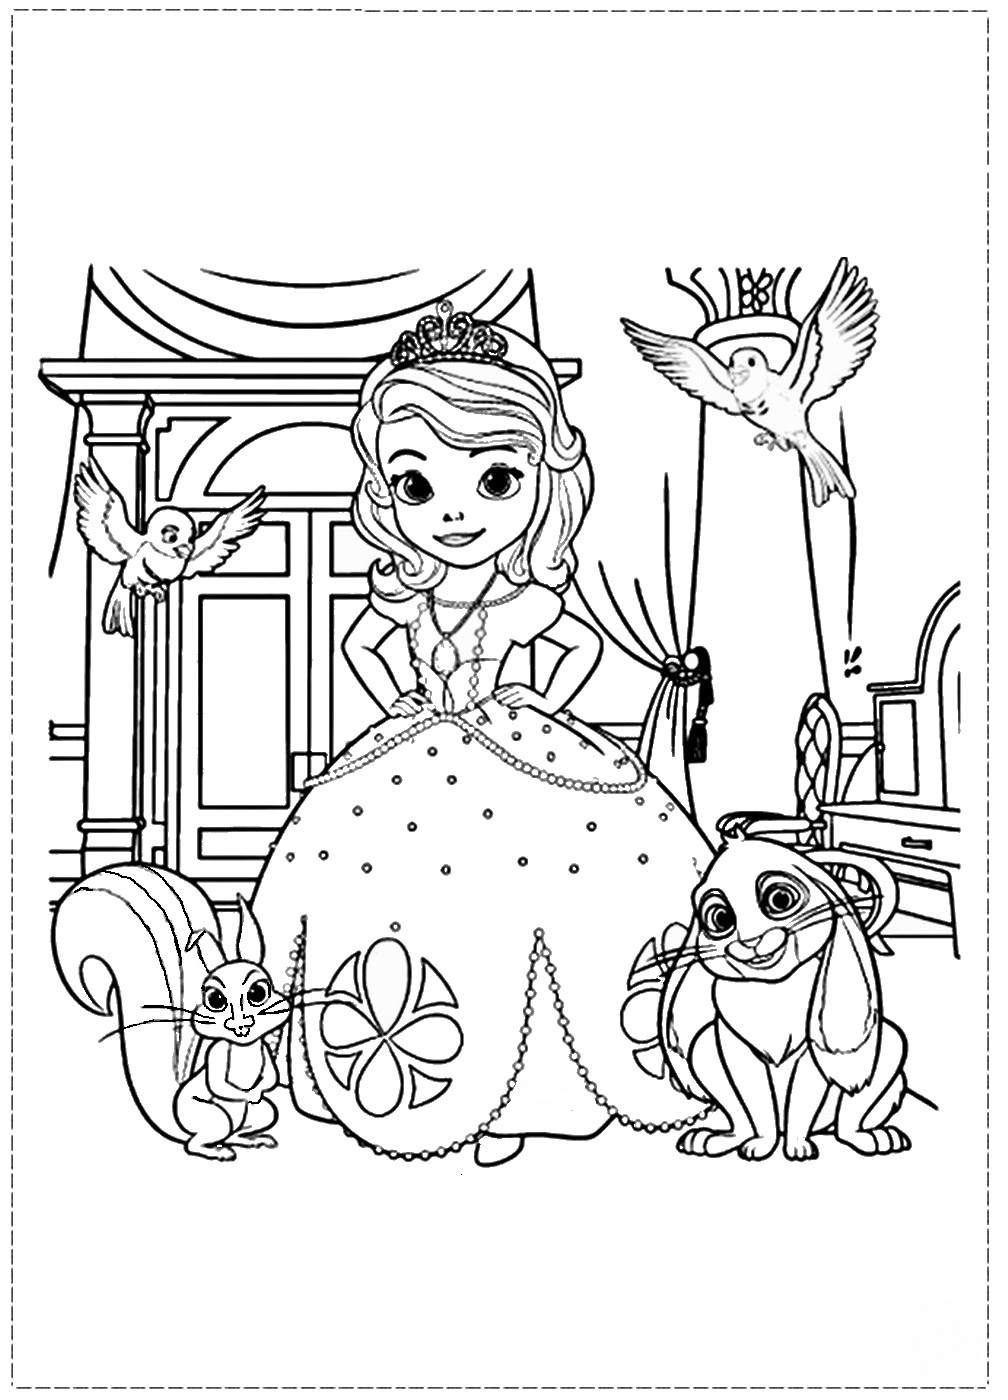 printable sofia the first coloring pages printable sofia the first coloring pages print color craft coloring pages first sofia the printable